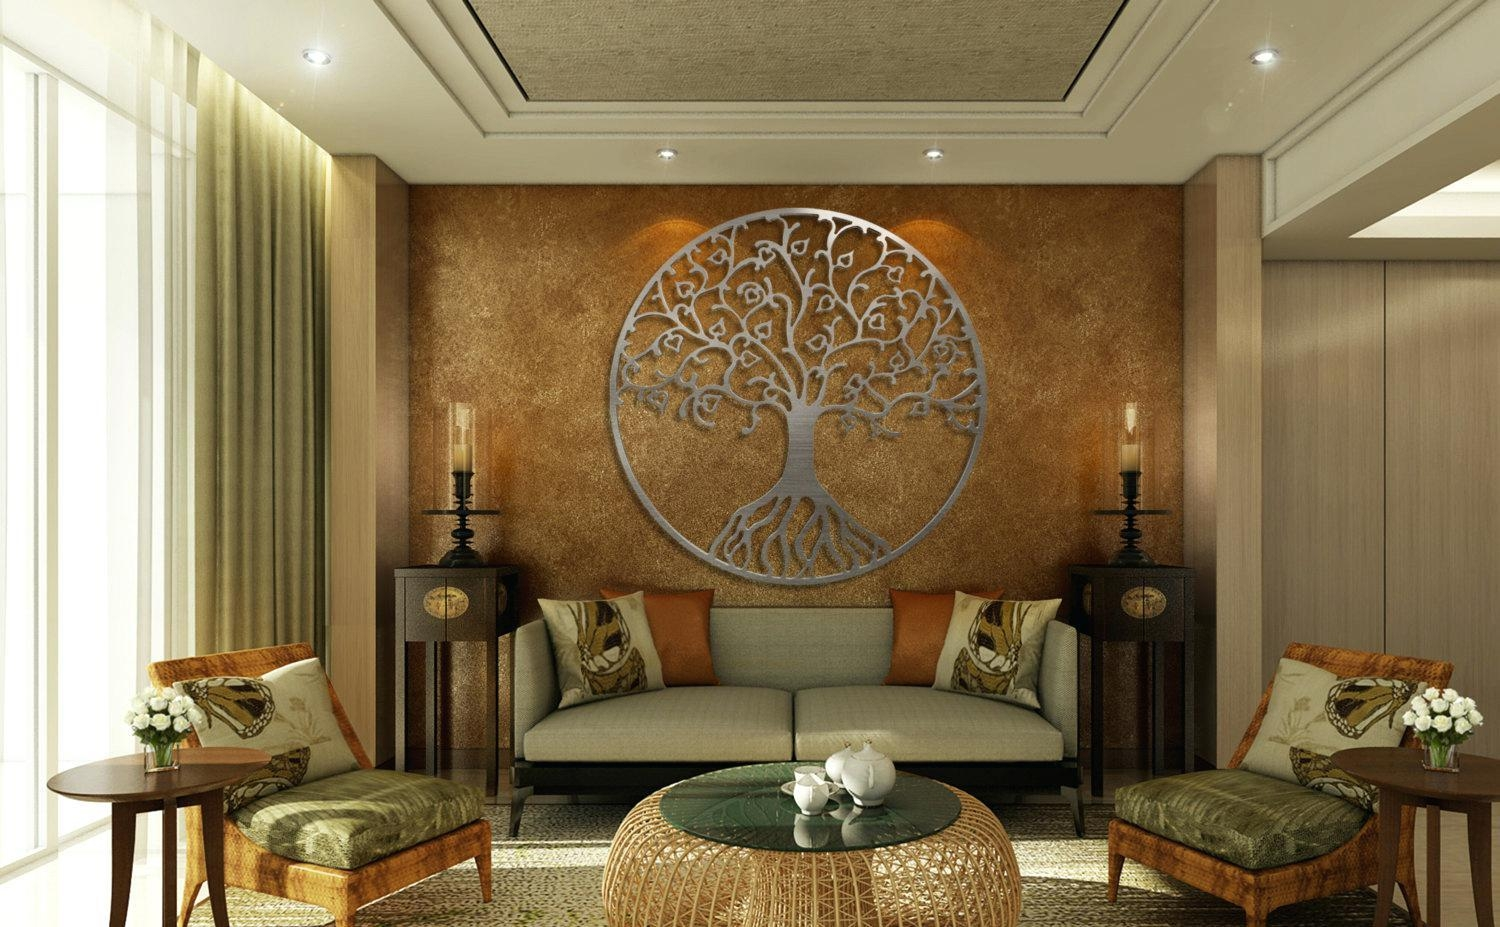 Wall Ideas : Rustic Wood Wall Art Large Wood Wall Art Panels Large With Regard To Wood And Iron Wall Art (Image 18 of 20)